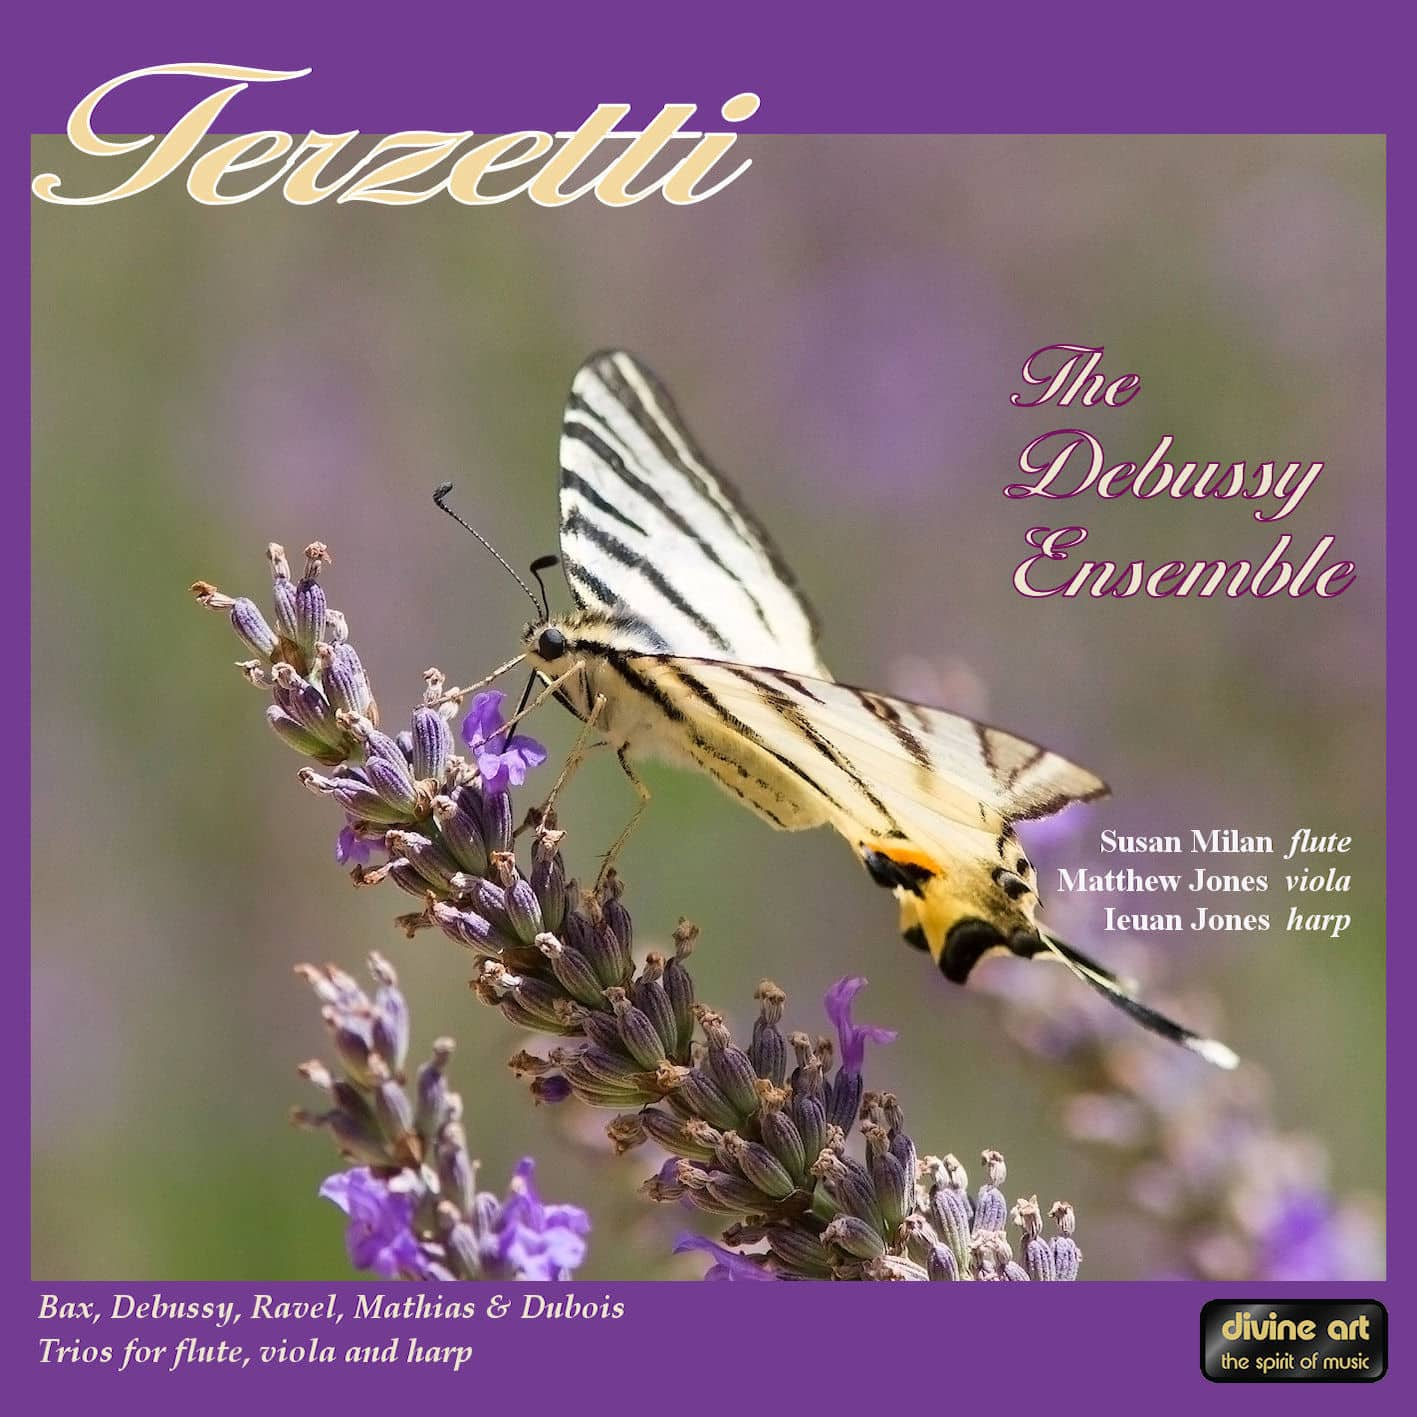 Terzetti: Trios for flute, viola and harp